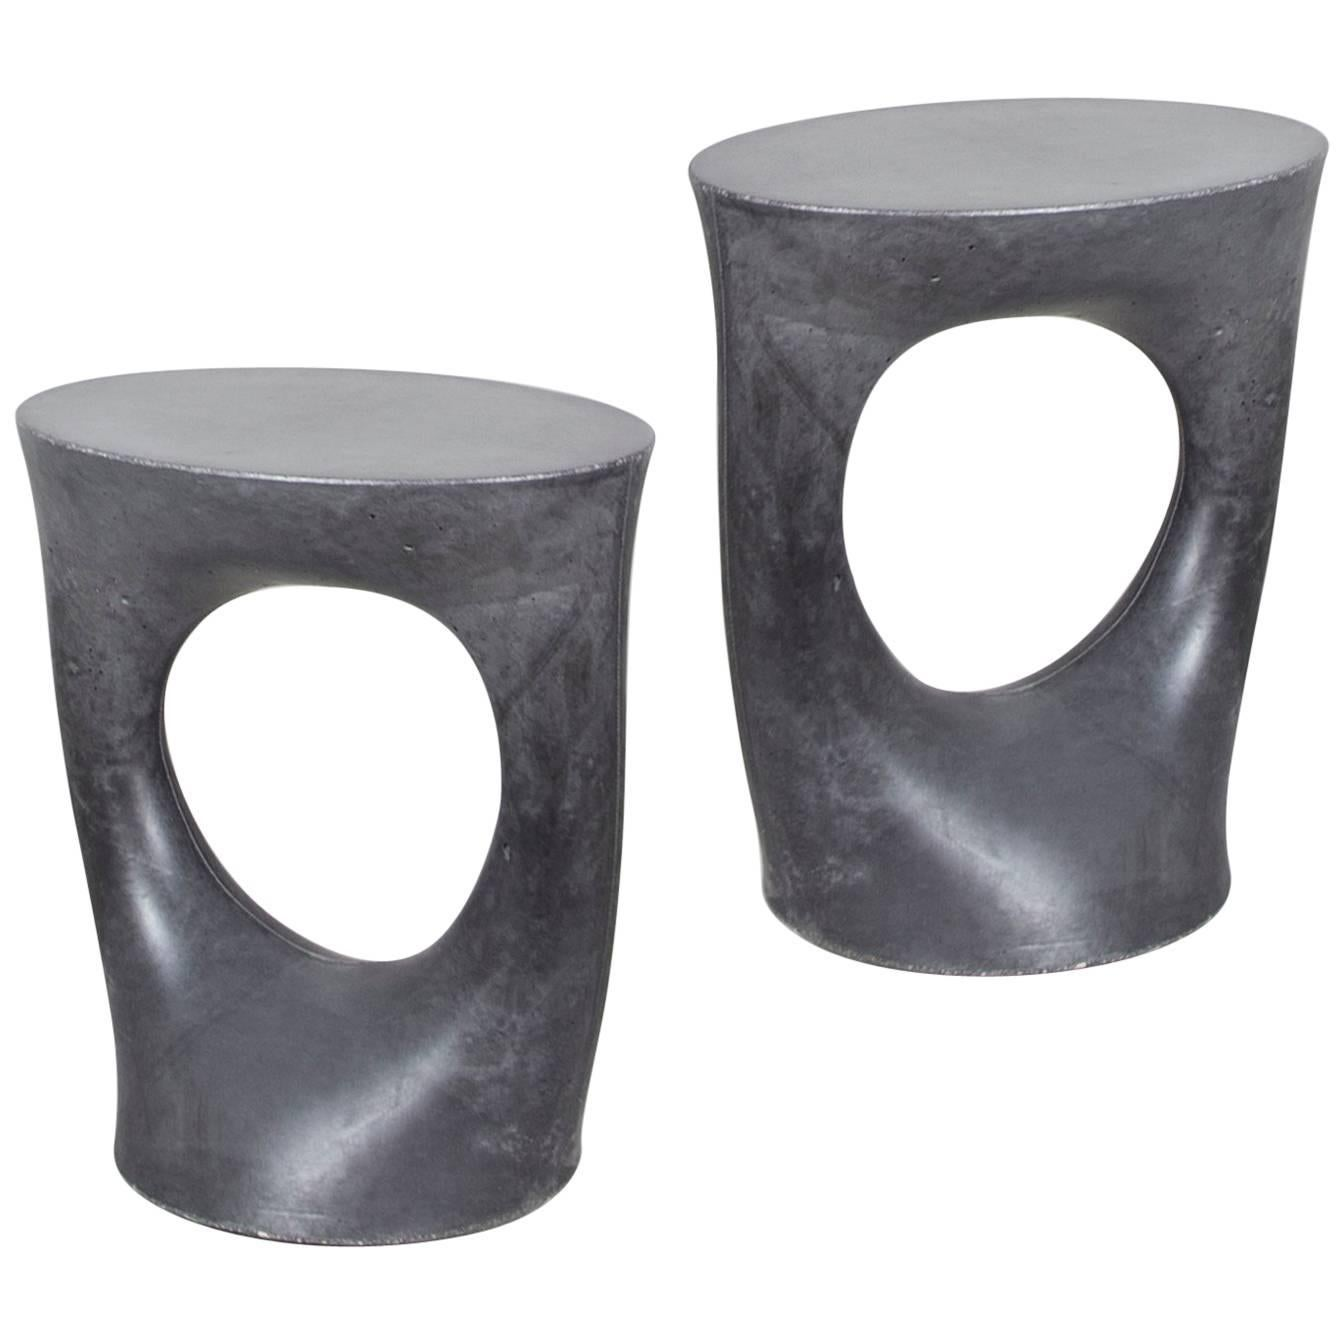 Pair of Charcoal Short Kreten Side Tables from Souda, Made to Order